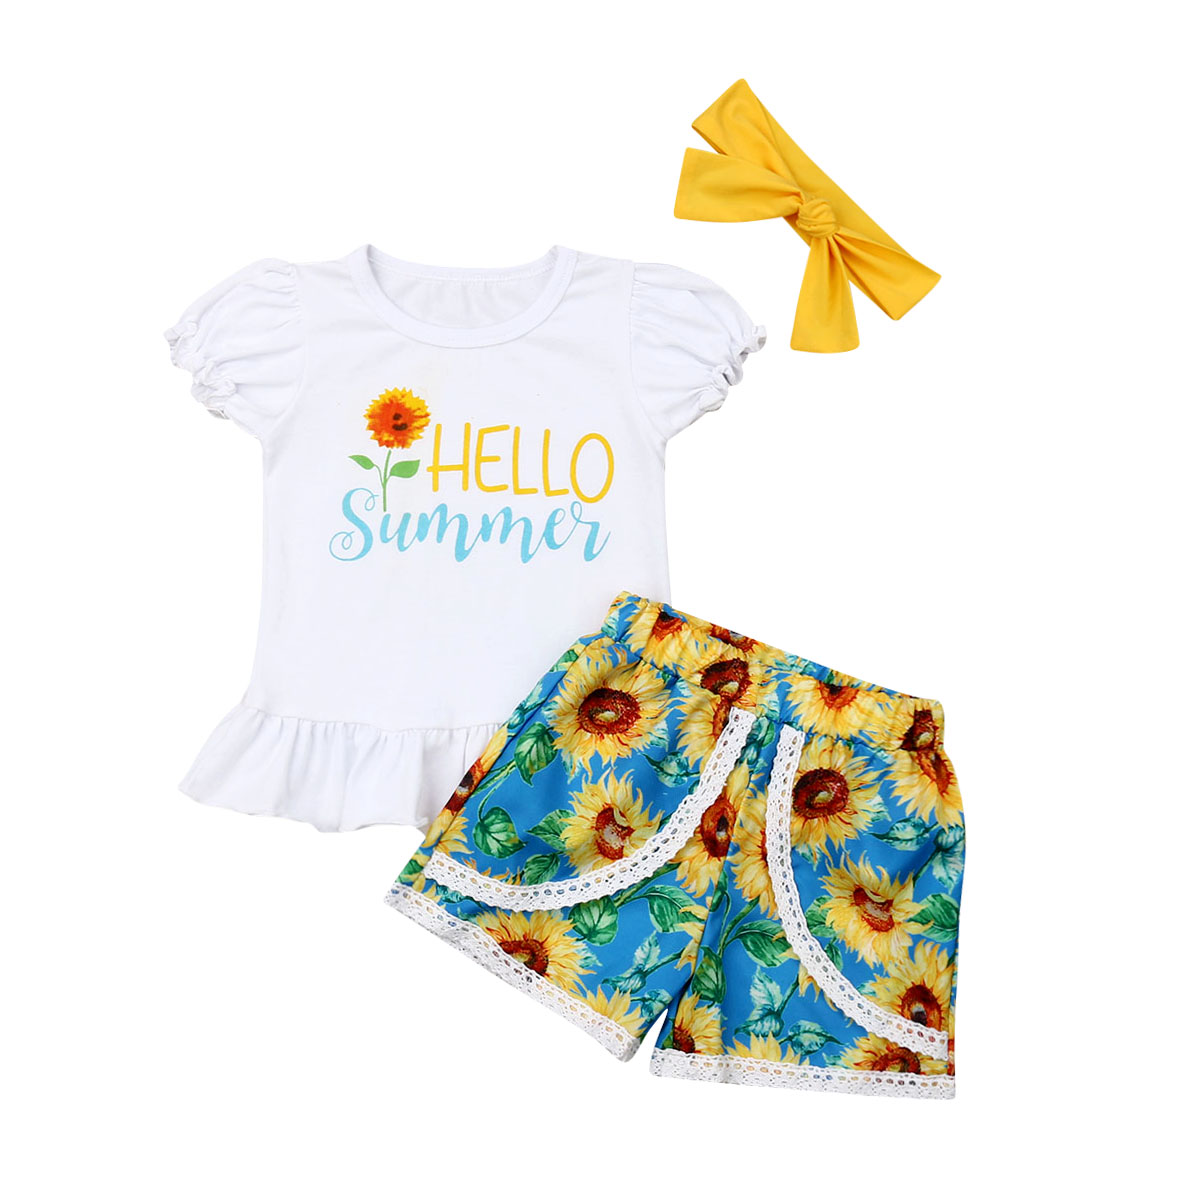 04cbcc9c2b Pudcoco 2019 Summer Baby Girl Clothes Kids Clothes Suits Sunflower Outfits  Sets T-shirt +